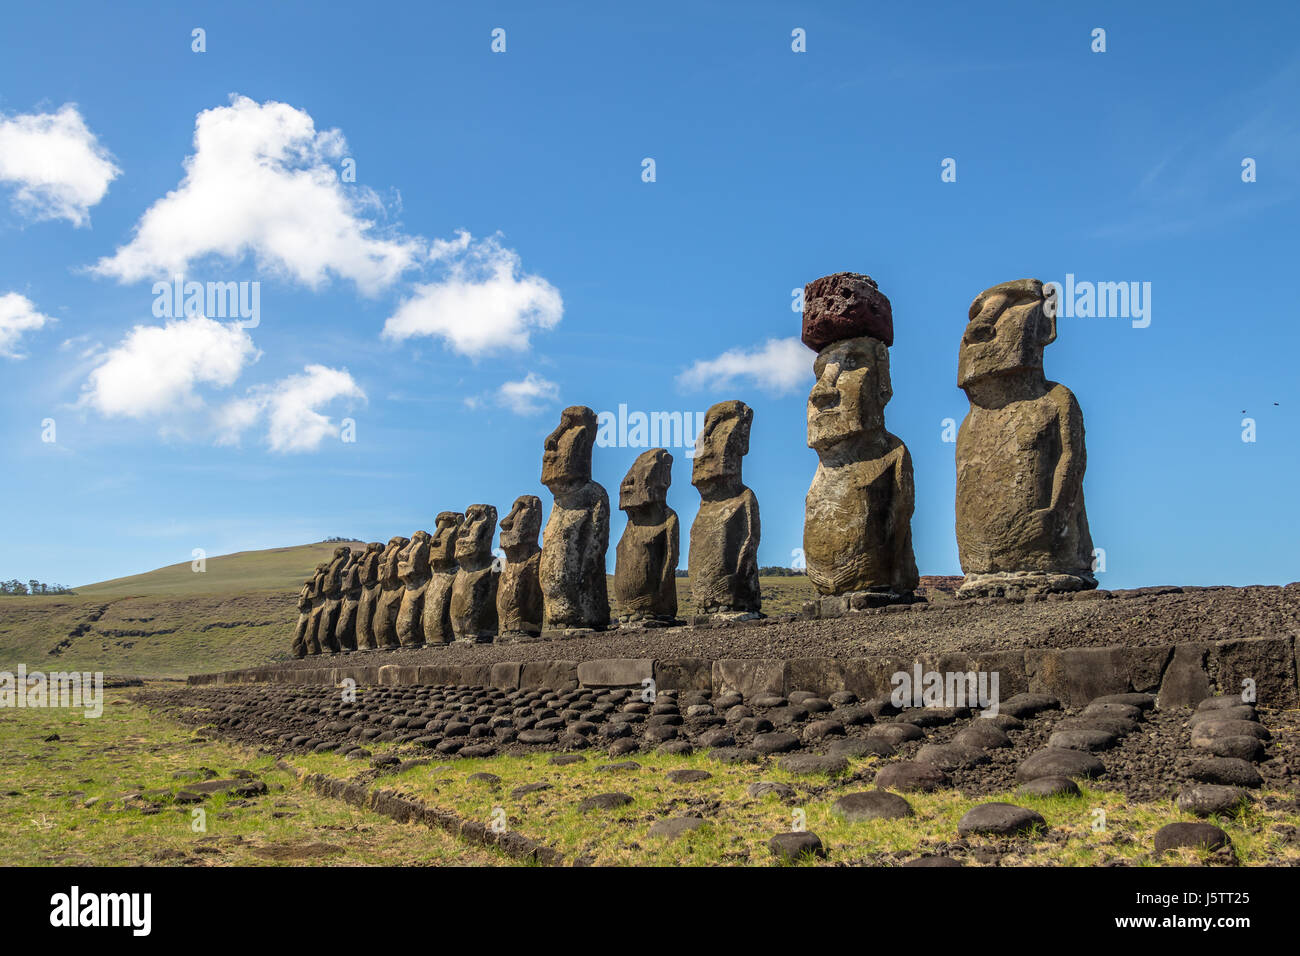 Statues Moai de l'ahu Tongariki - Île de Pâques, Chili Photo Stock